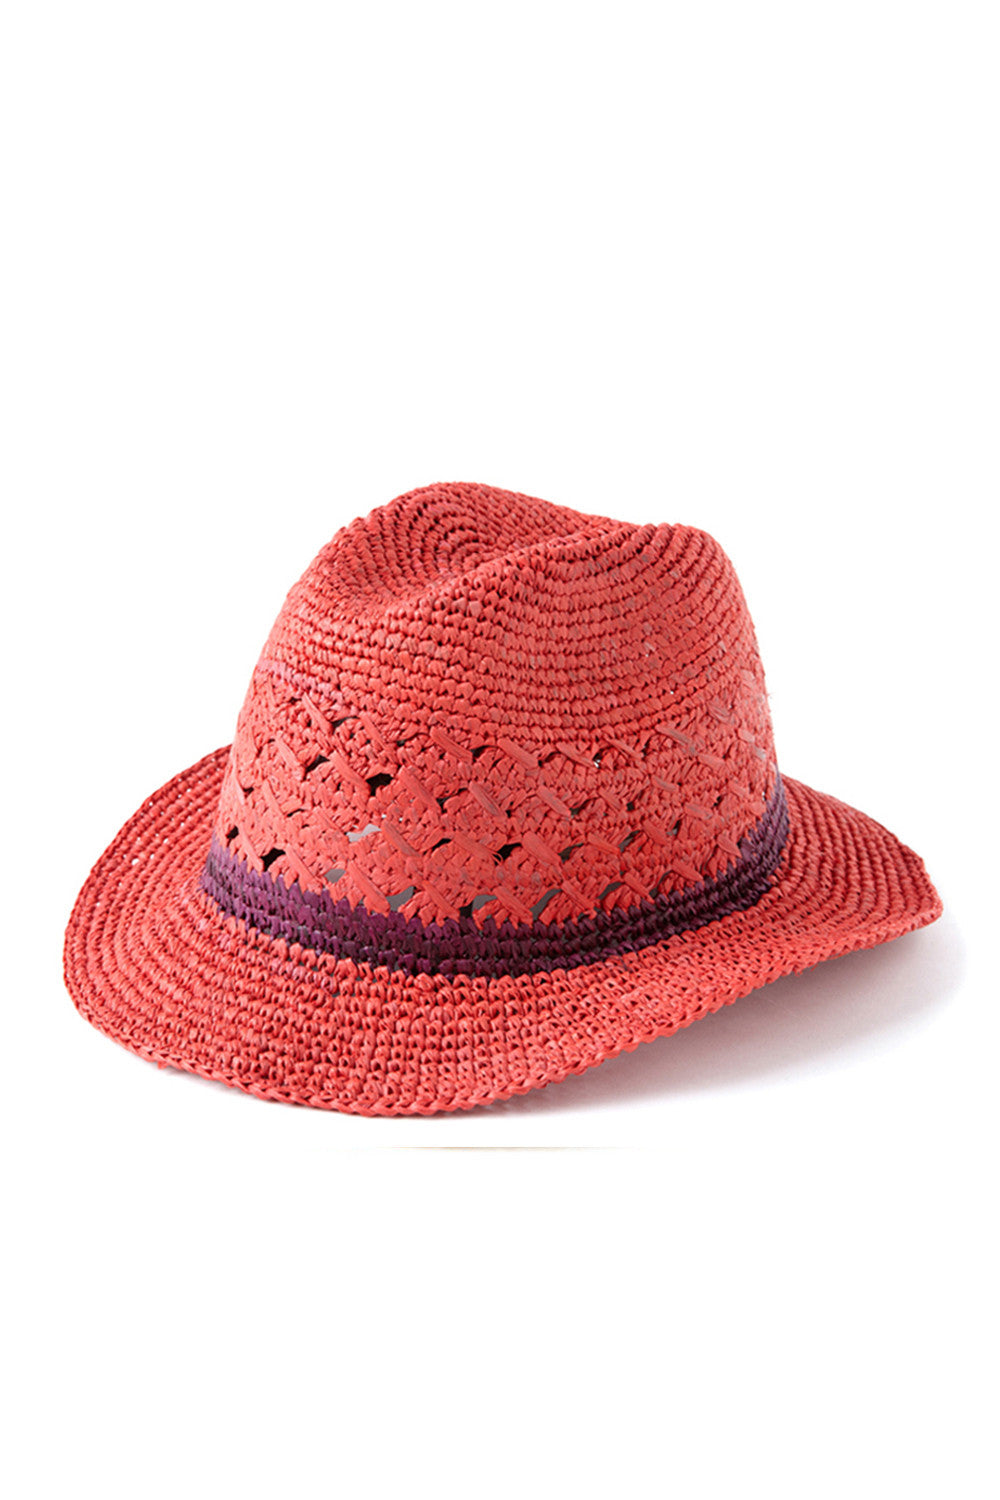 Avery Hat in Coral